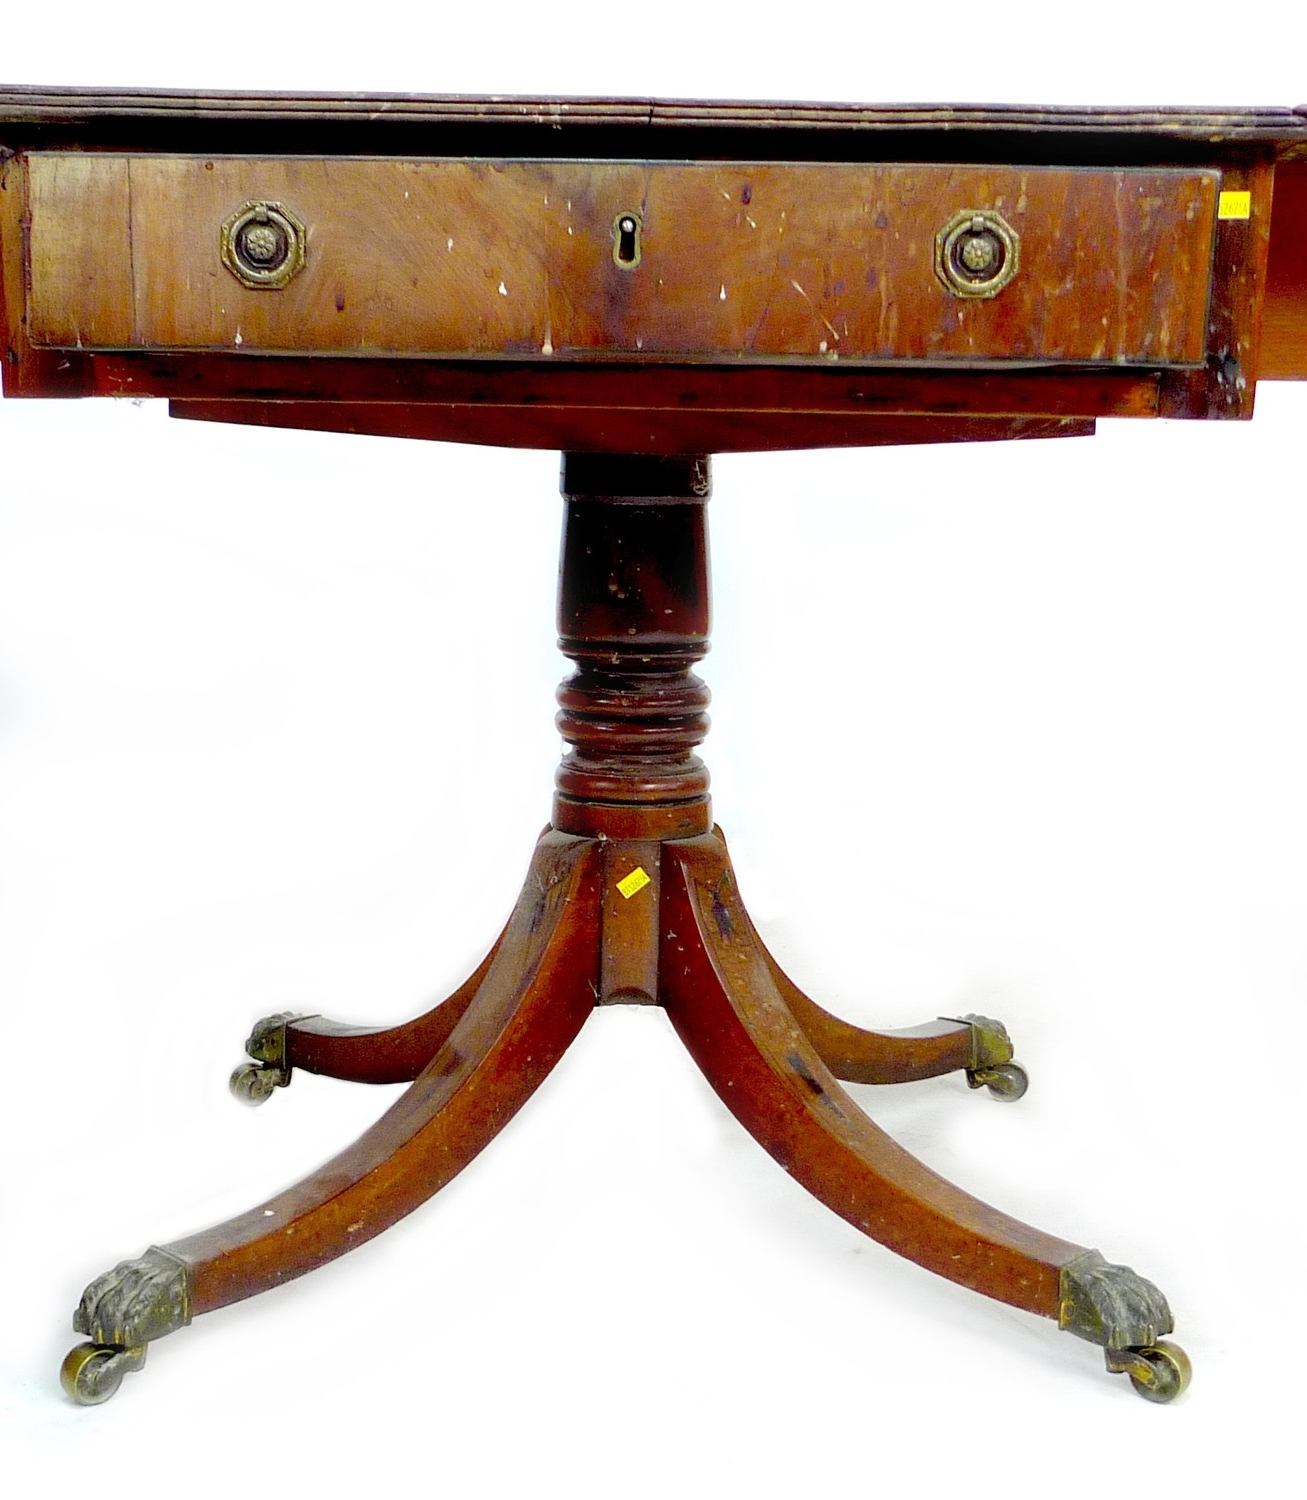 A Regency mahogany sofa table, with single frieze drawer, raised on four outswept legs with brass - Image 3 of 5